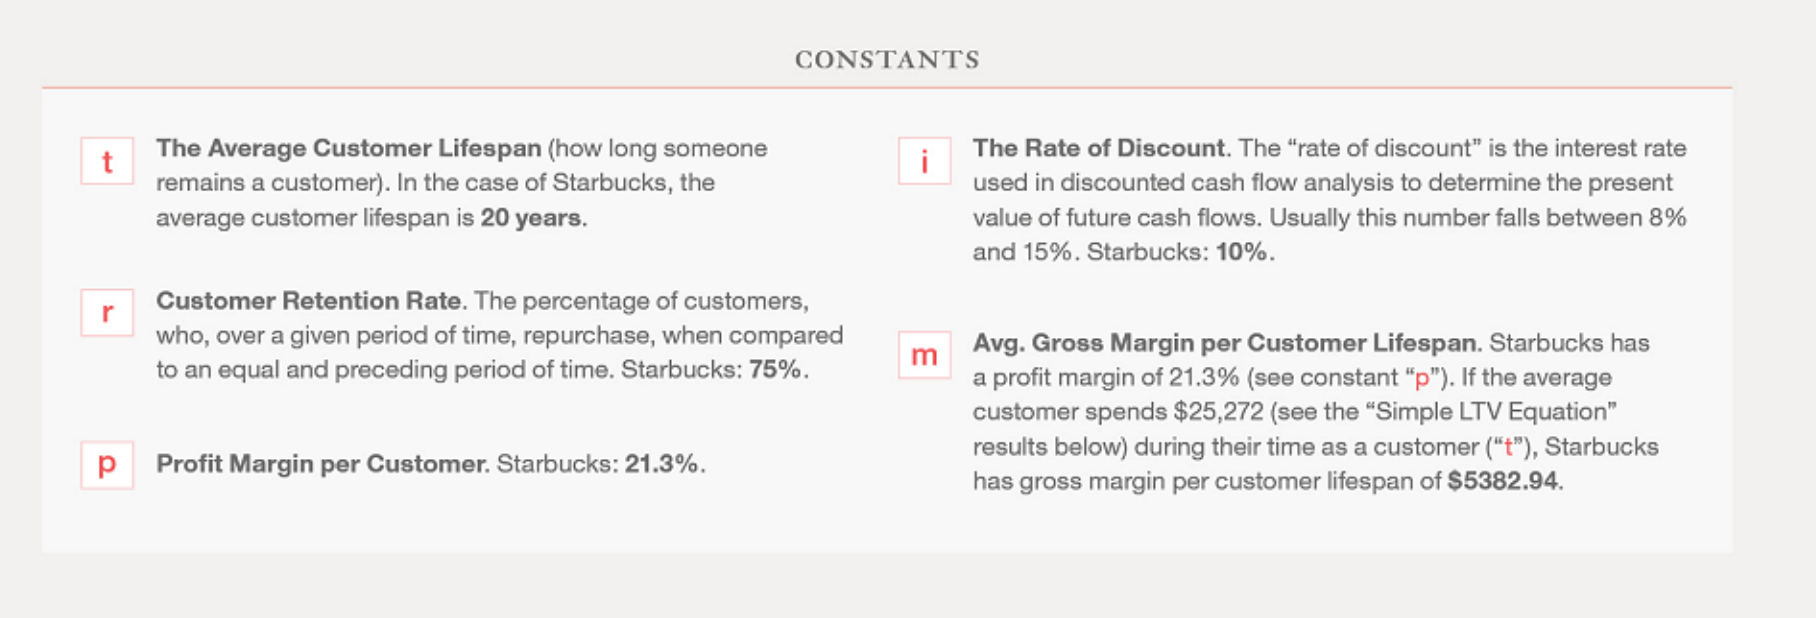 Kissmetrics shows the costants required for calculating customer lifetime value. View their  infographic  for a full explanation of how to calculate it.